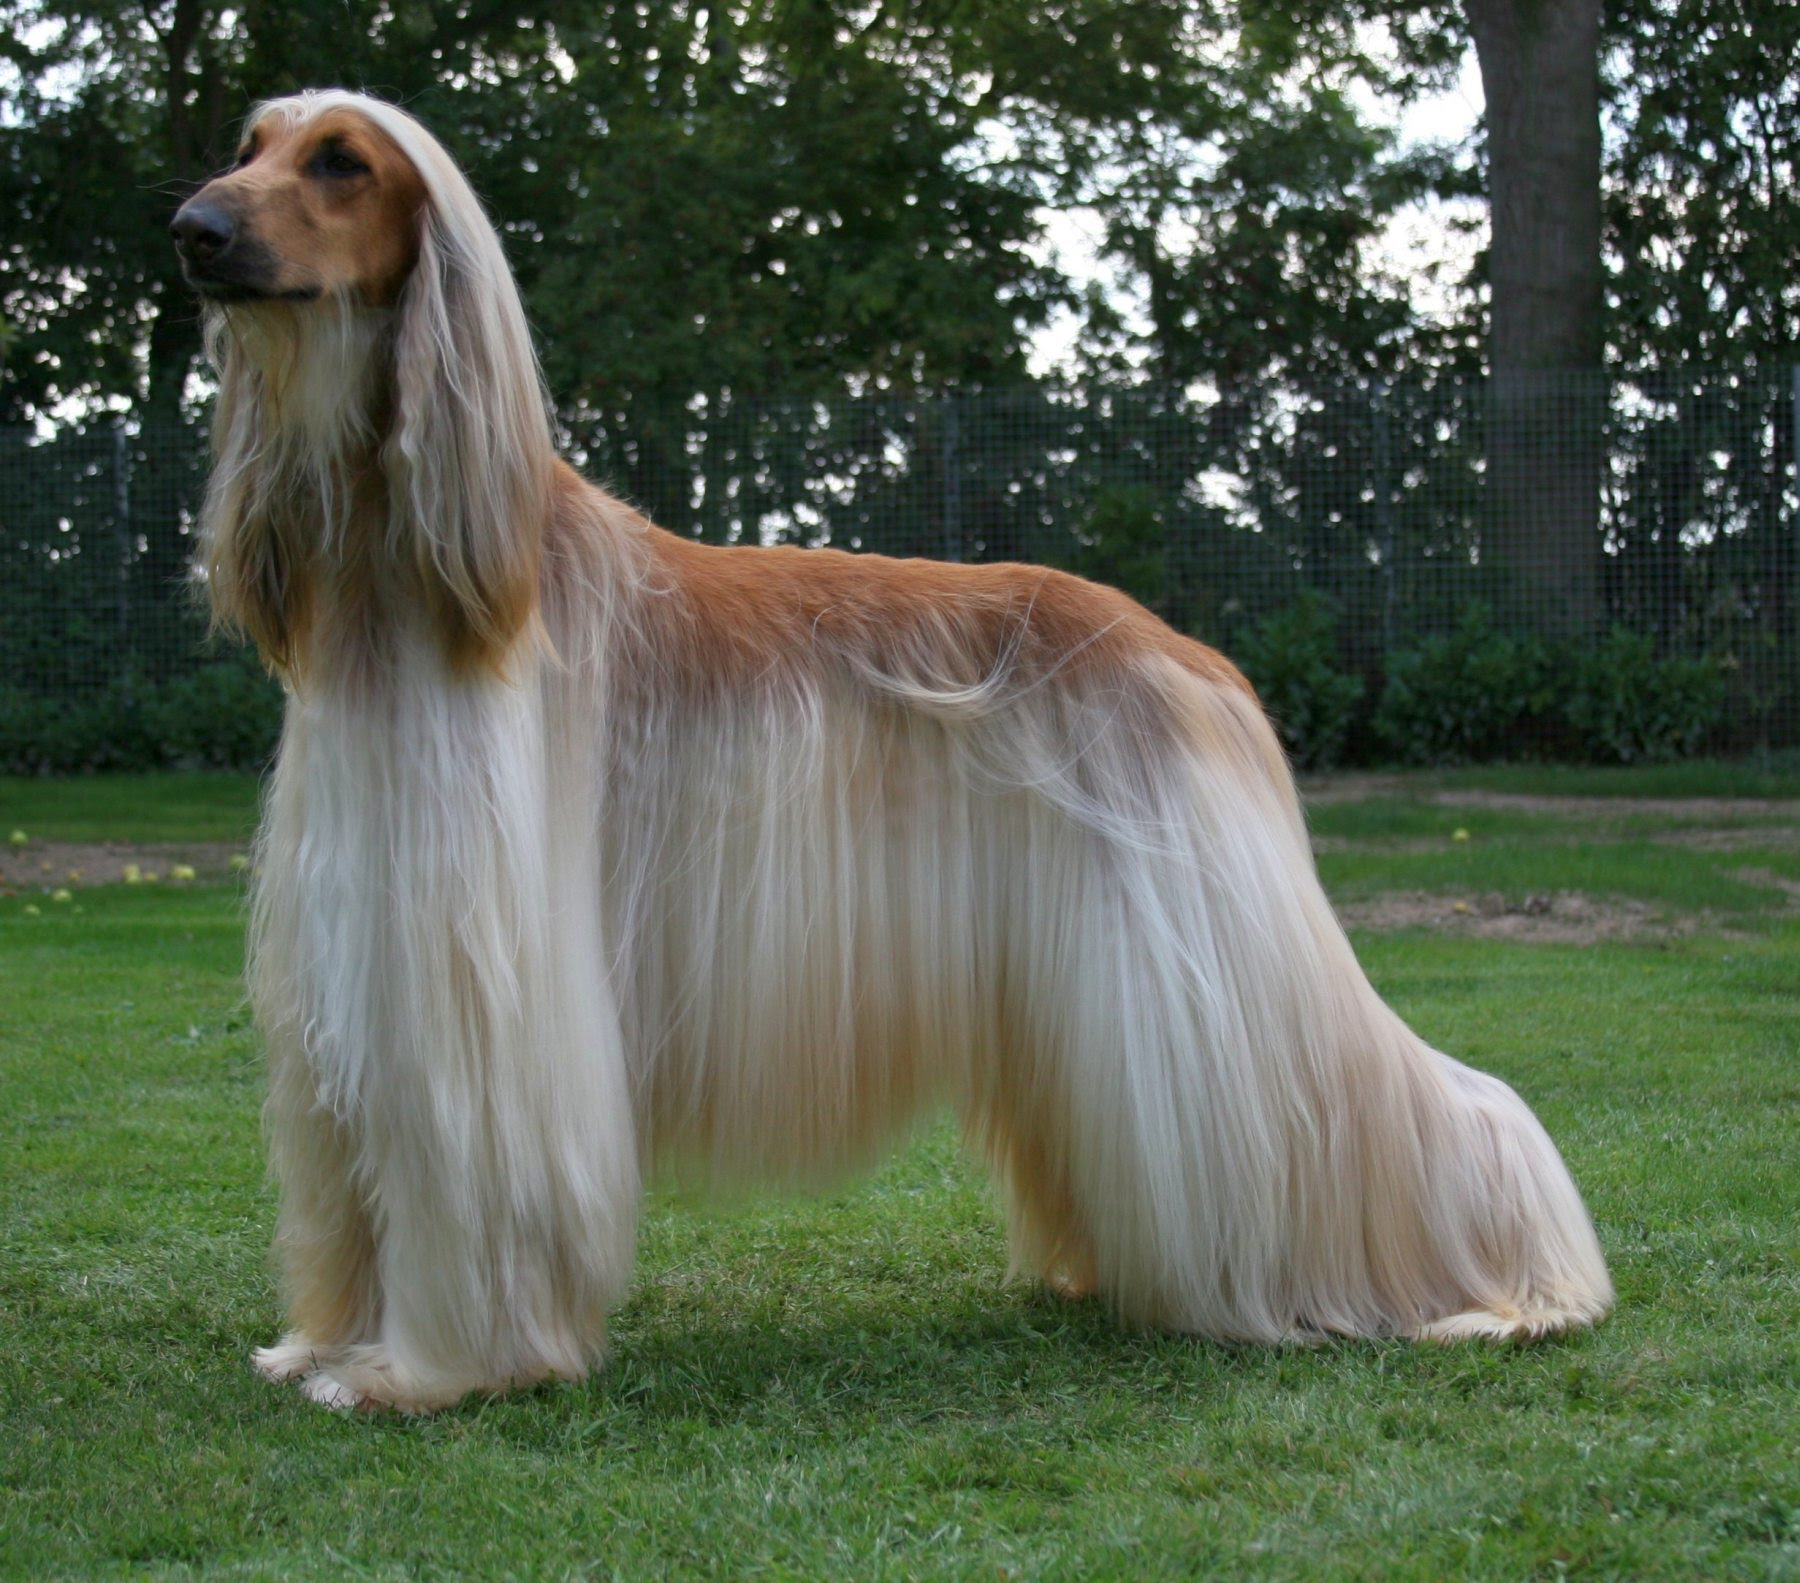 AFGHAN HOUND - appearance, fur, playing, barking, body - YouTube